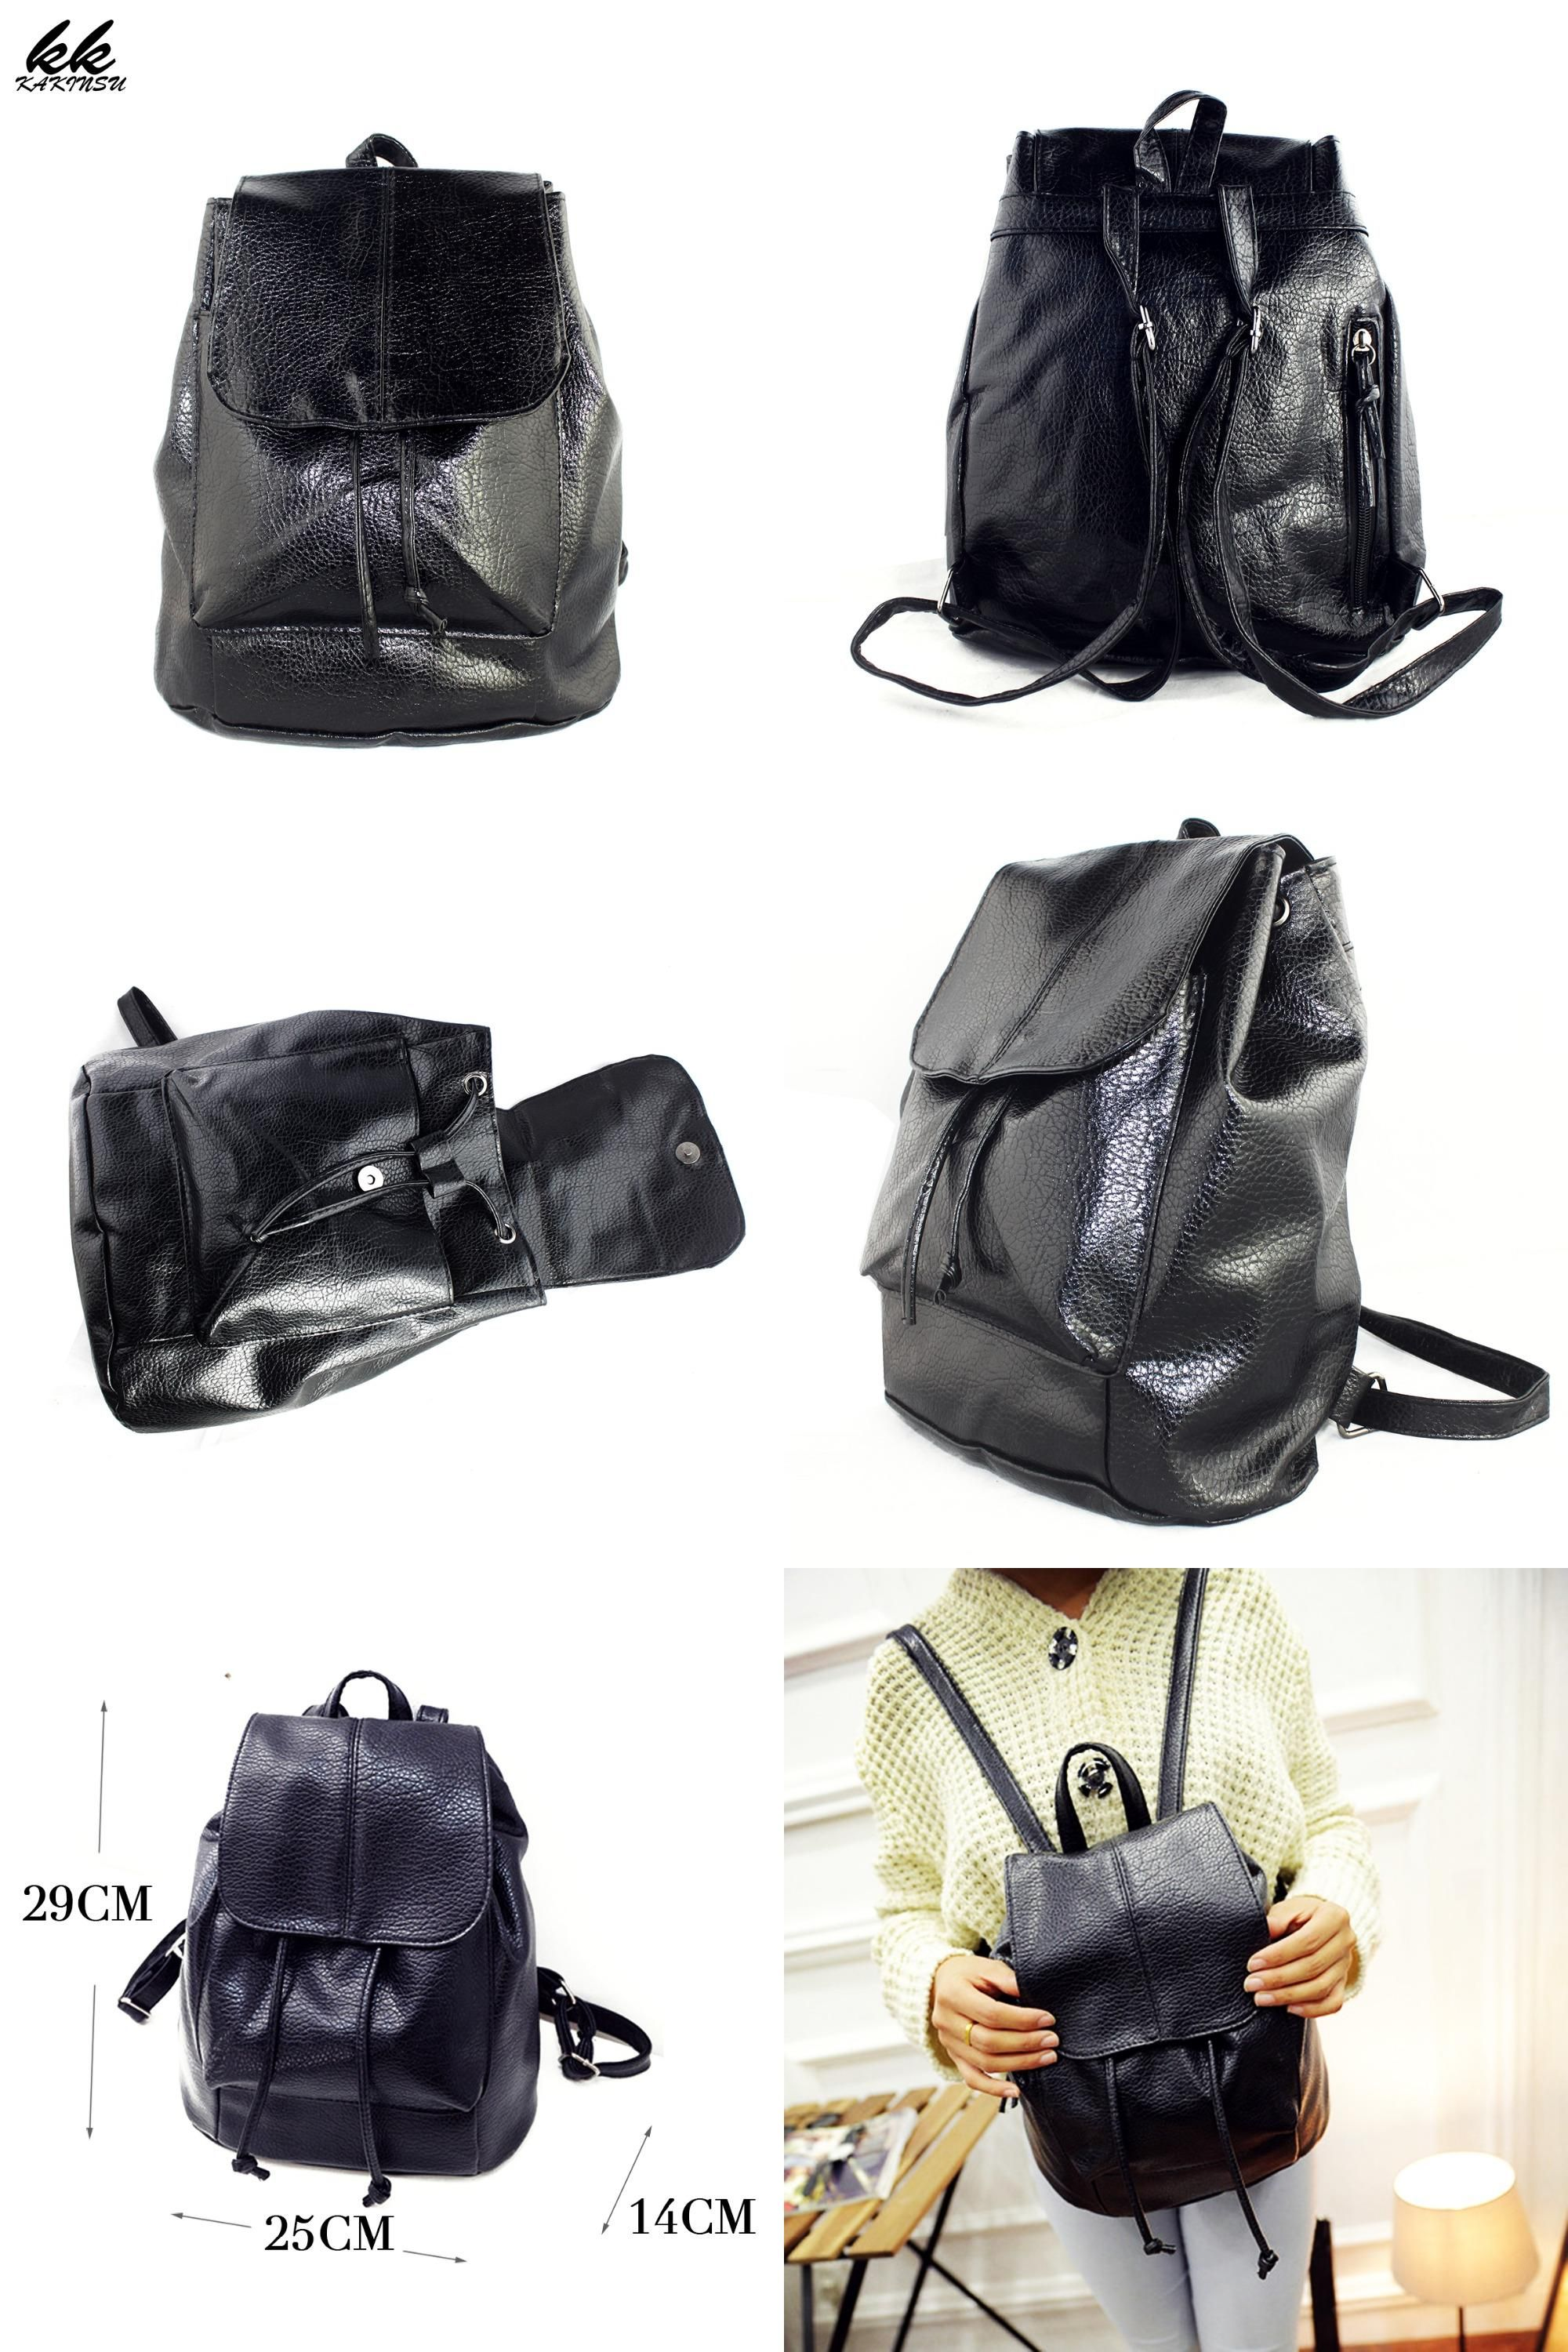 53227de1ac77 ... Luggage   Bag Collections.  Visit to Buy  2017 Design PU Leather  Backpack Women Backpacks For Teenage Girls School